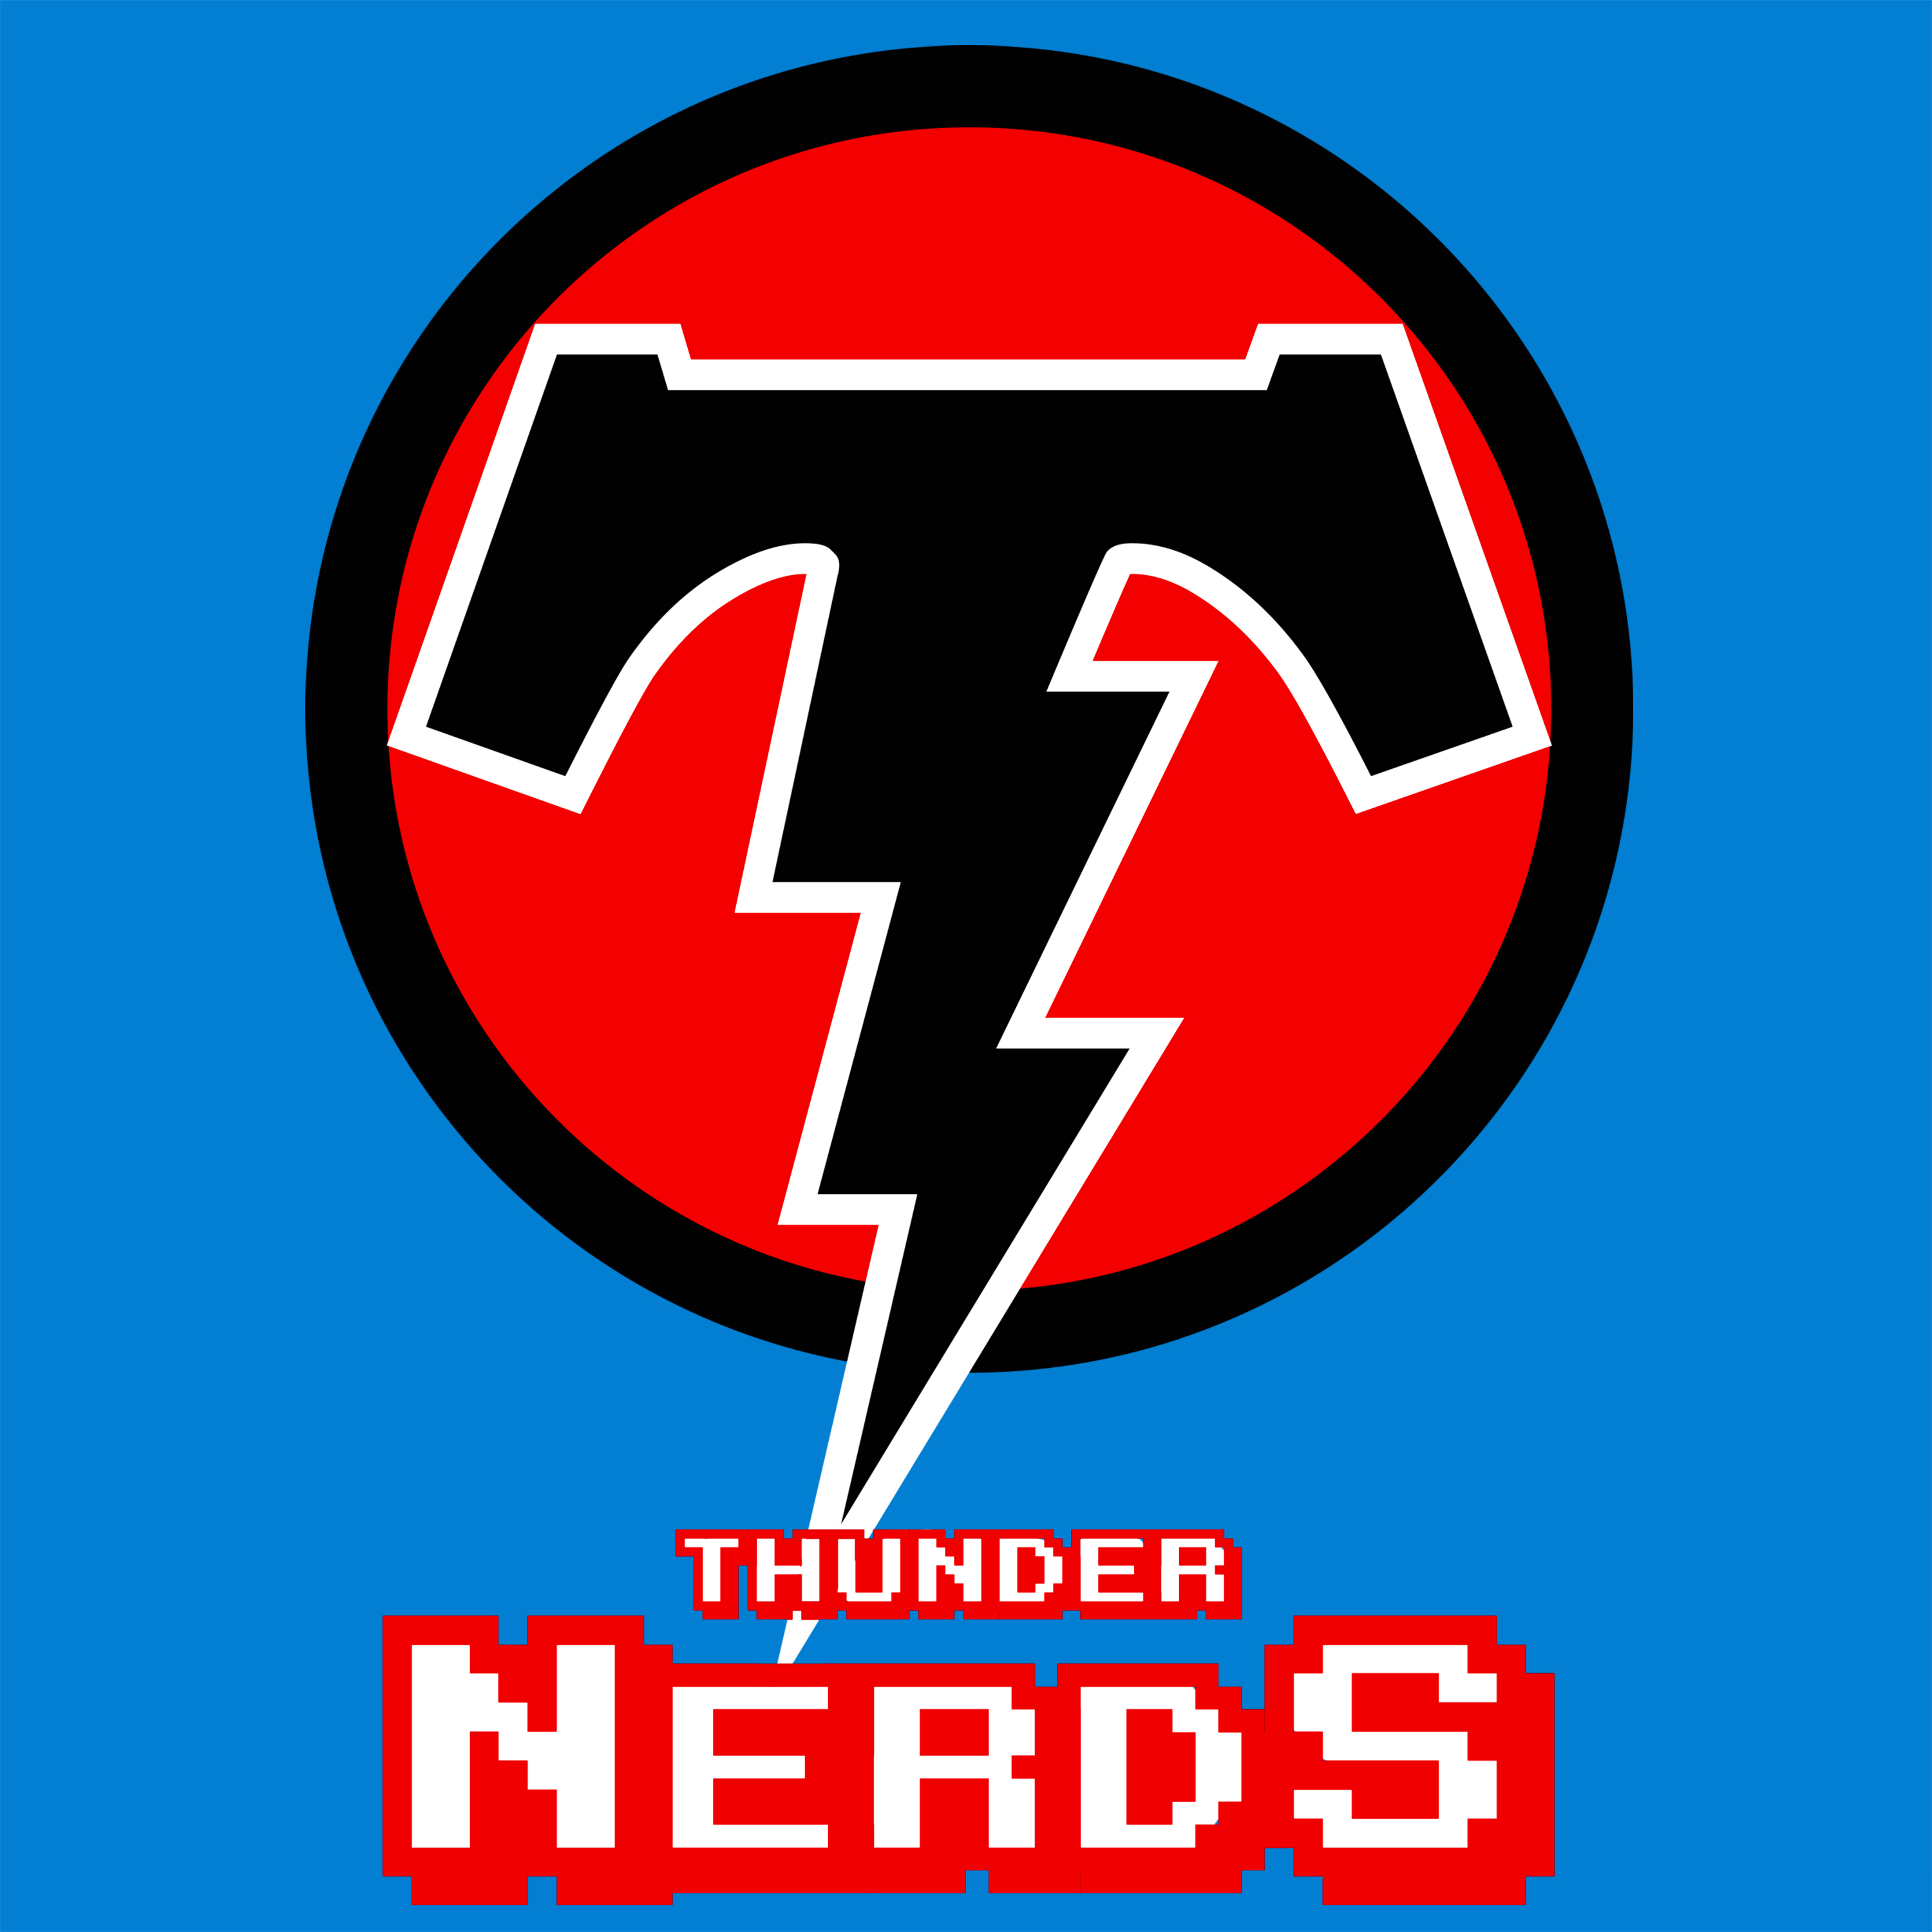 Thunder Nerds